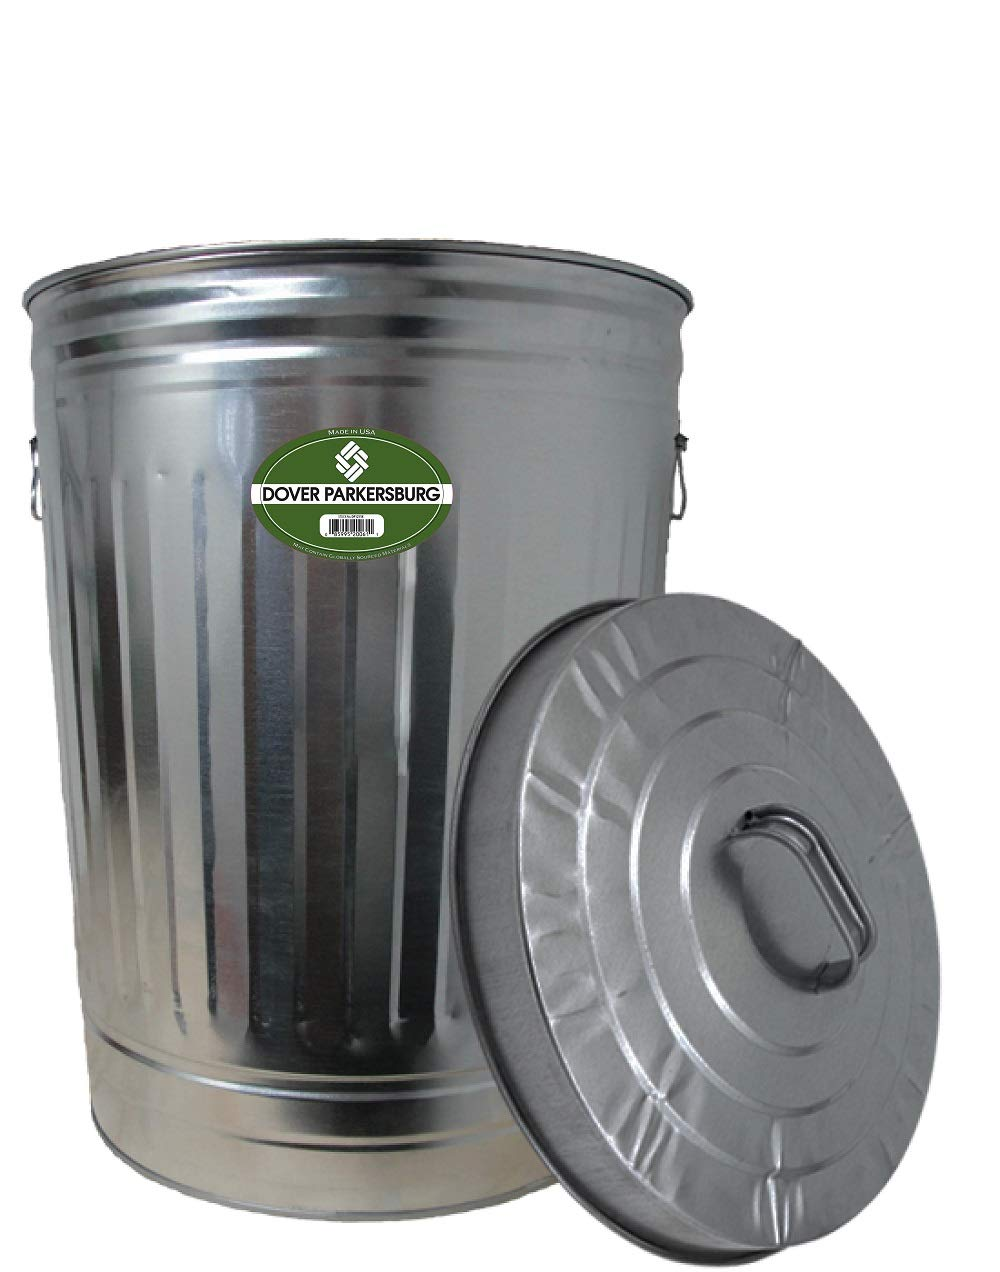 Dover Parkersburg DP1211K Steel Can, 20-Gallon Silver